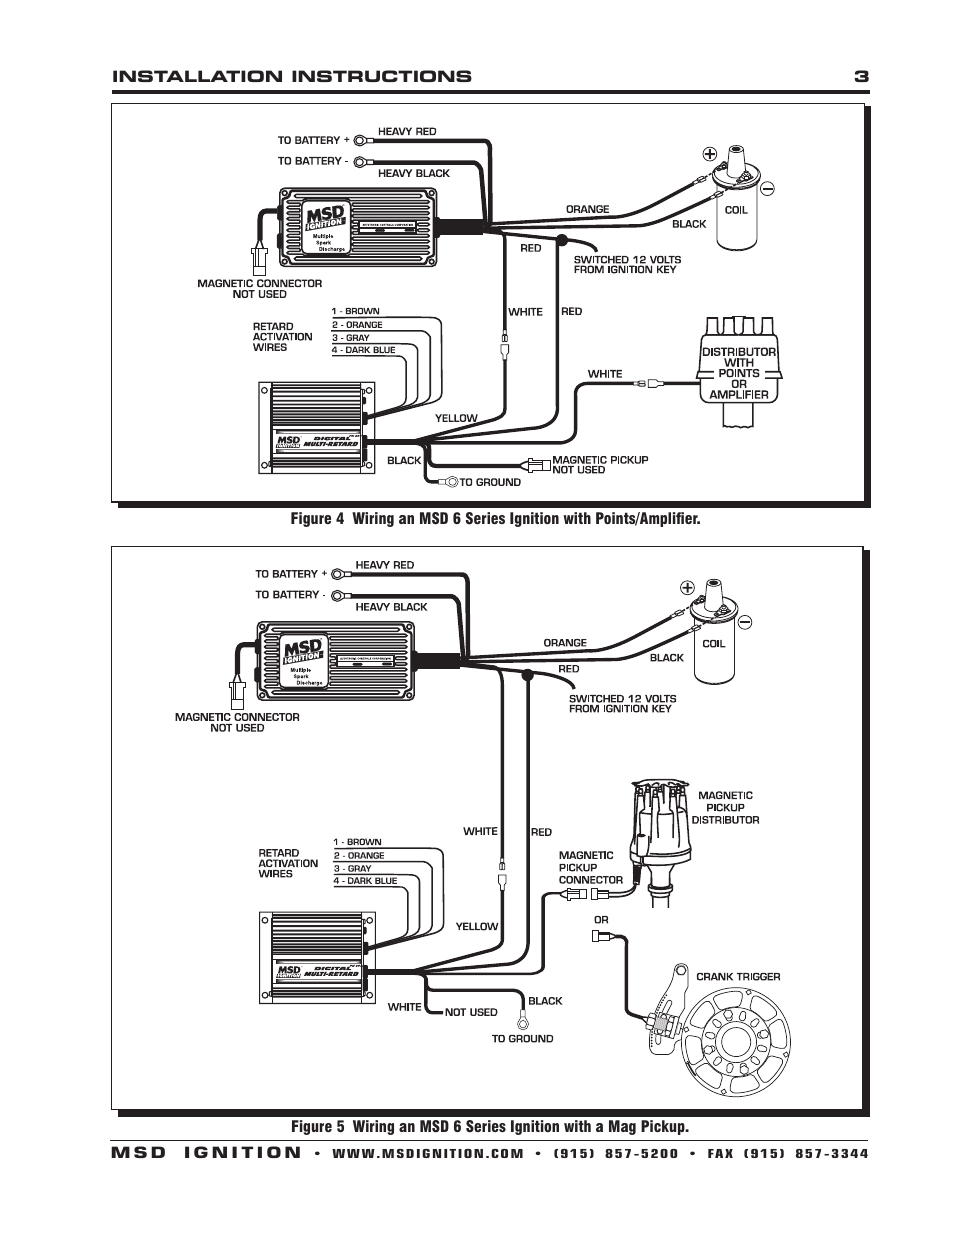 msd 8975 wiring diagram trusted wiring diagrams u2022 rh sivamuni com msd pn 8975 wiring diagram